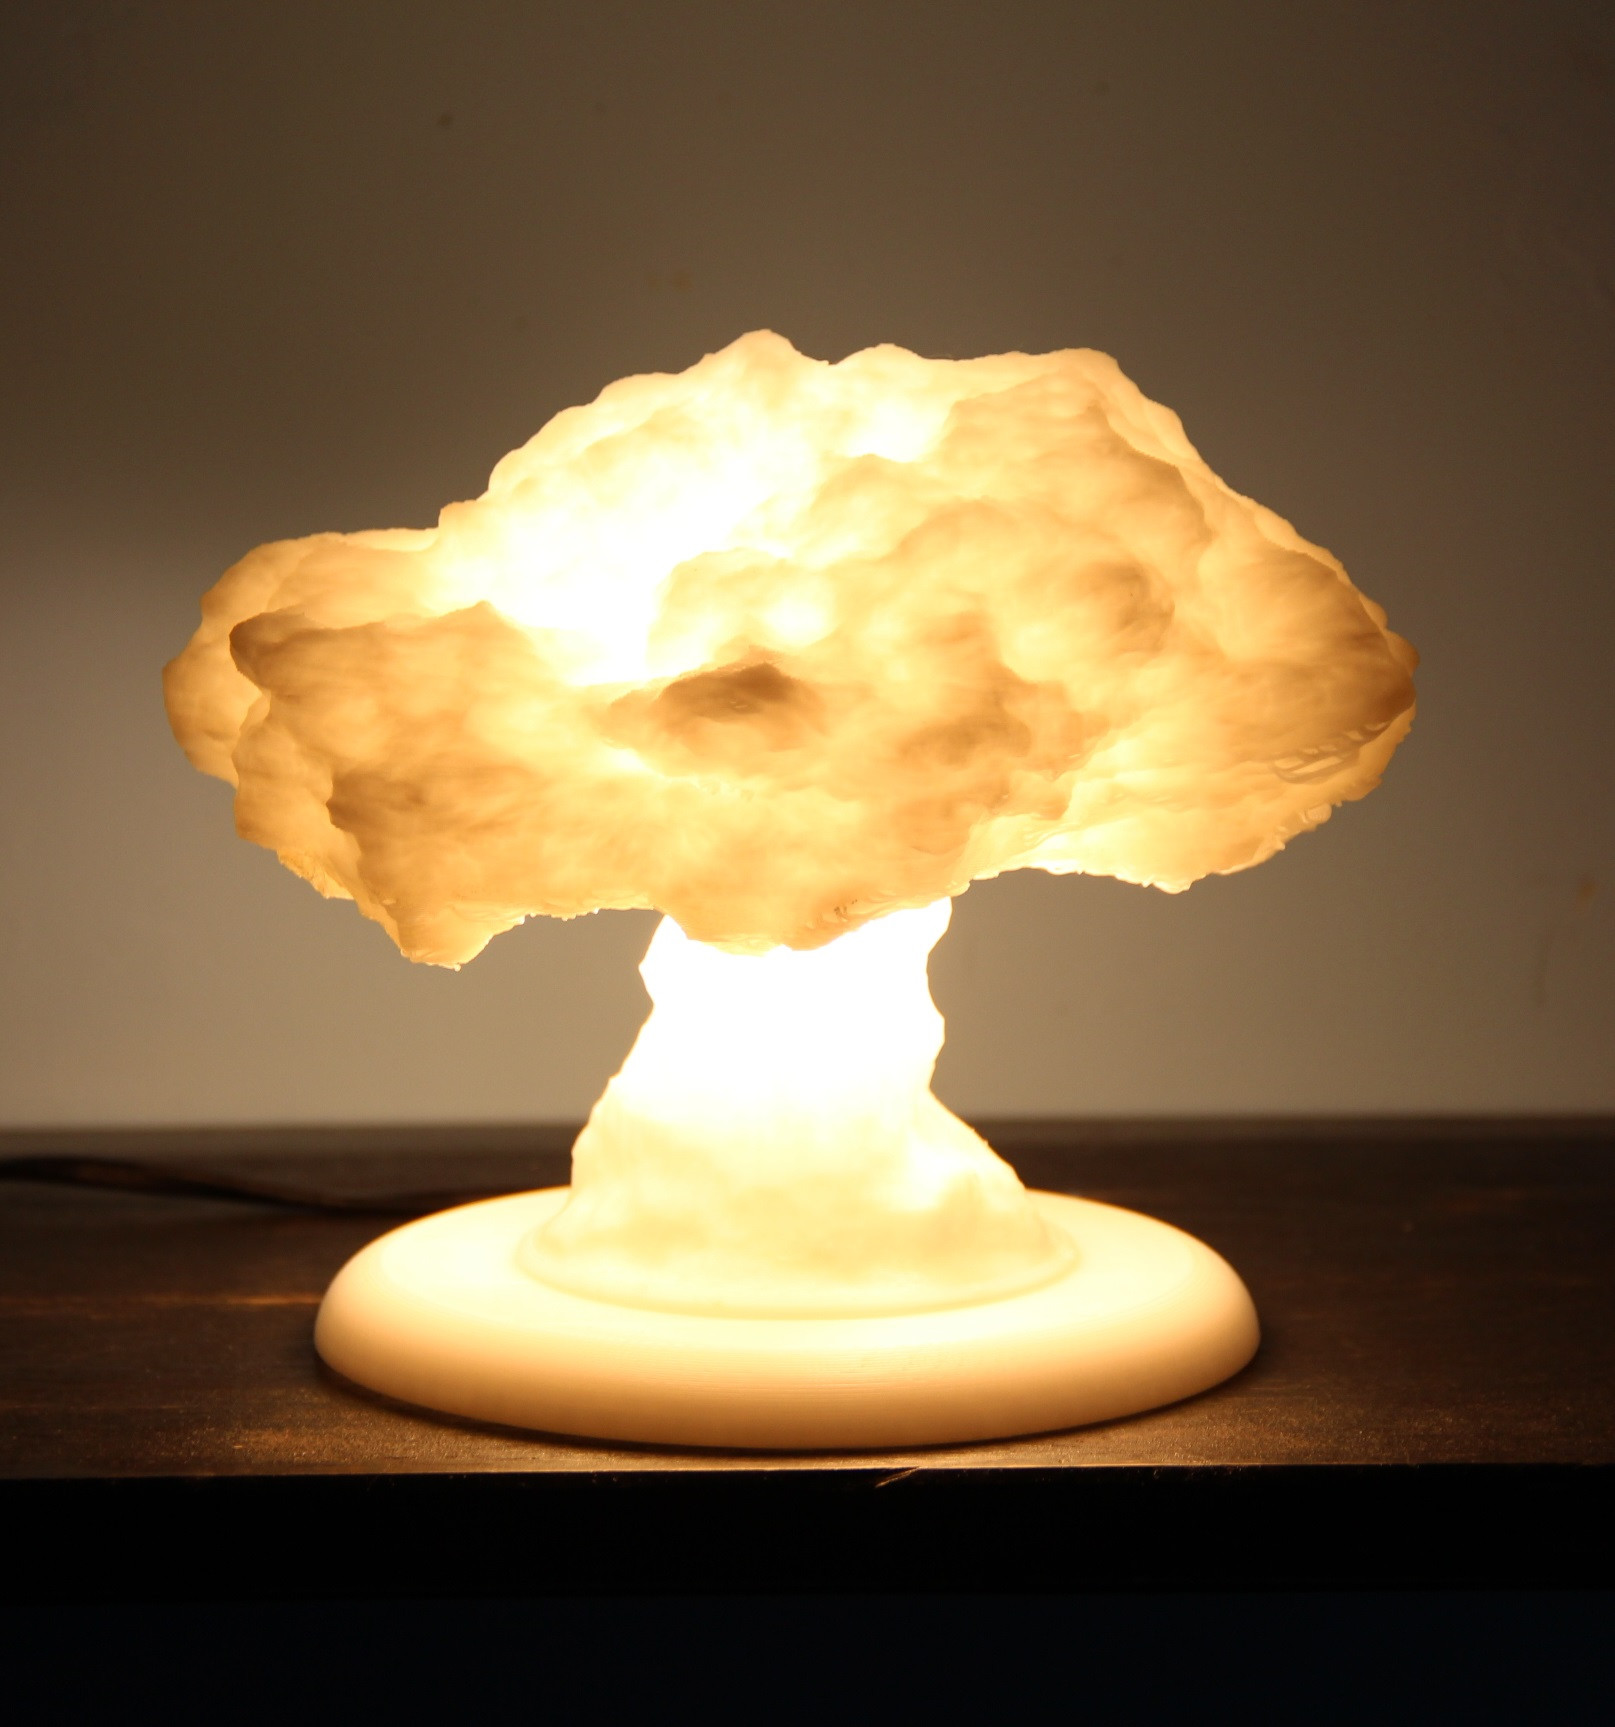 Lighting Up Your Home With The Sizzling Cloud Lamps | Warisan Lighting